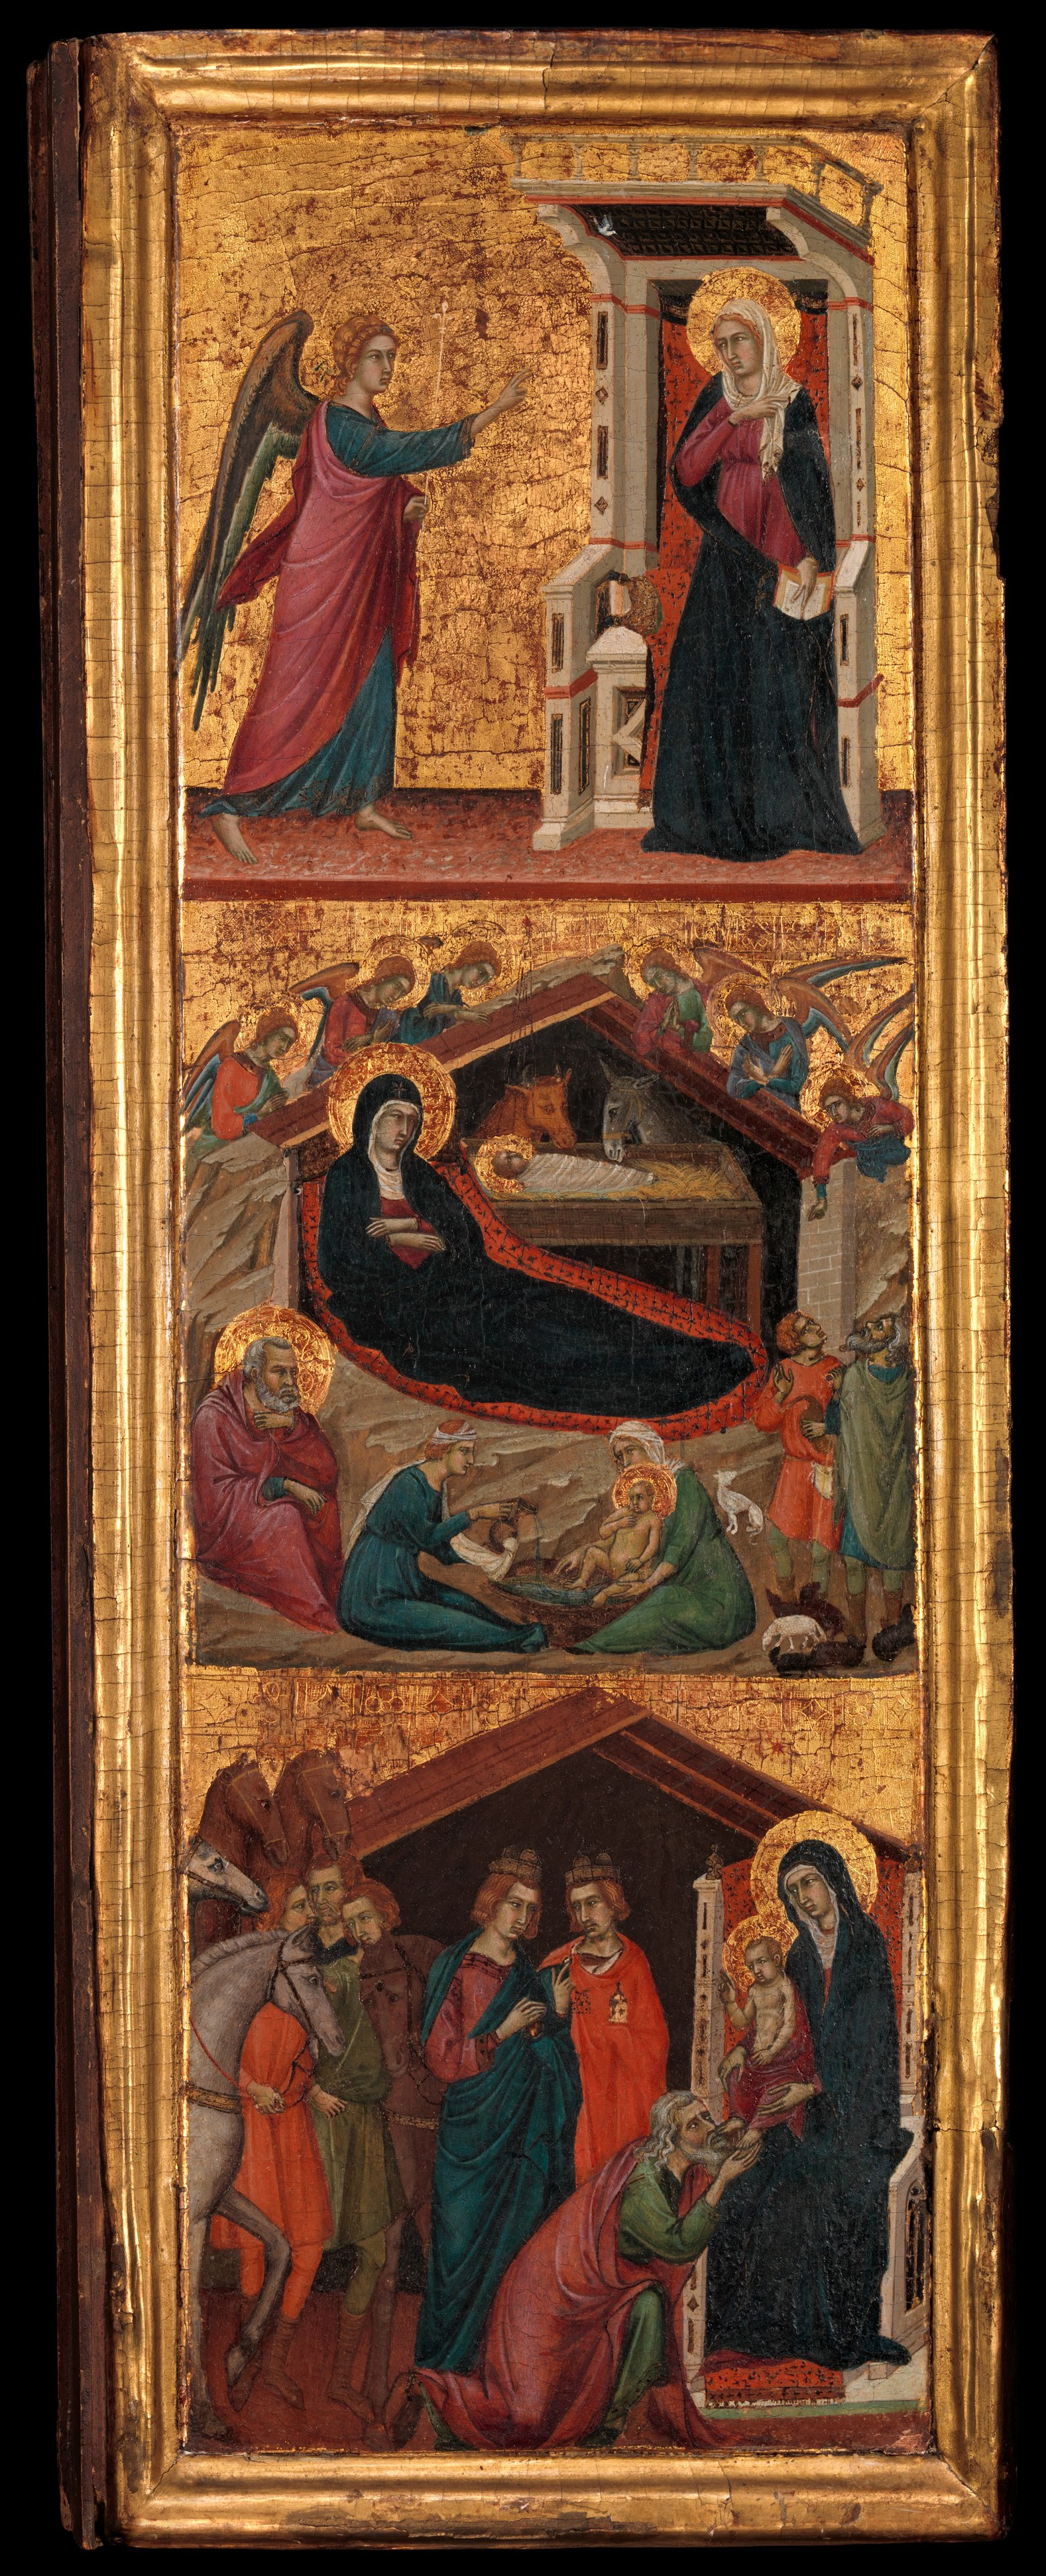 Master of Monte Oliveto (Italian, active Siena ca. 1305–35) Saints and Scenes from the Life of the Virgin, ca. 1320 Tempera on wood, gold ground; Left wing, overall, with engaged frame, 25 1/4 x 9 1/4 in. (64.1 x 23.5 cm), painted surface 23 3/8 x 7 1/2 in. (59.4 x 19.1 cm); right wing, overall, with engaged frame, 25 1/8 x 9 3/8 in. (63.8 x 23.8 cm), painted surface 23 1/2 x 7 1/2 in. (59.7 x 19.1 cm) The Metropolitan Museum of Art, New York, Bequest of George Blumenthal, 1941 (41.190.31bc) http://www.metmuseum.org/Collections/search-the-collections/437018